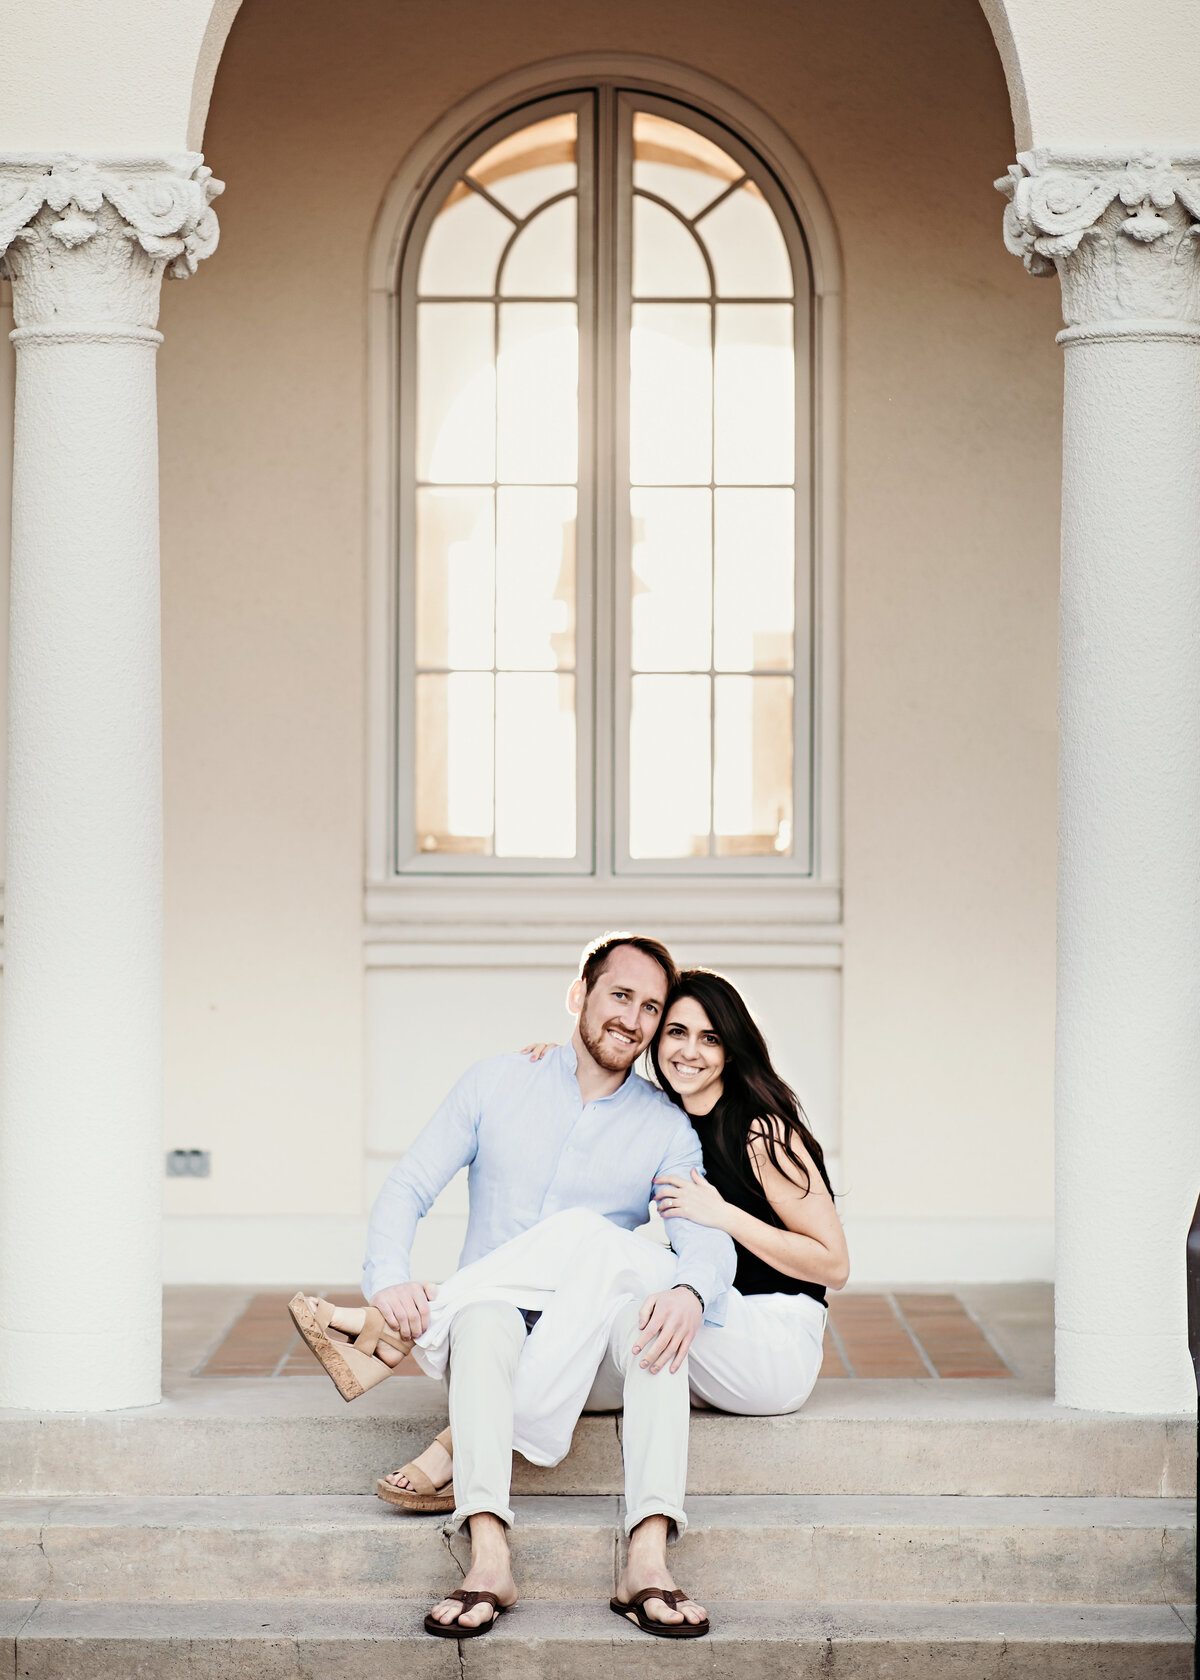 A photograph of an engaged couple sitting next to vintage columns and an arched window, relaxing as the woman drapes her legs across her fiance's lap and they romantically touch faces by Garry & Stacy Photography Co - Orlando Florida engagement photography